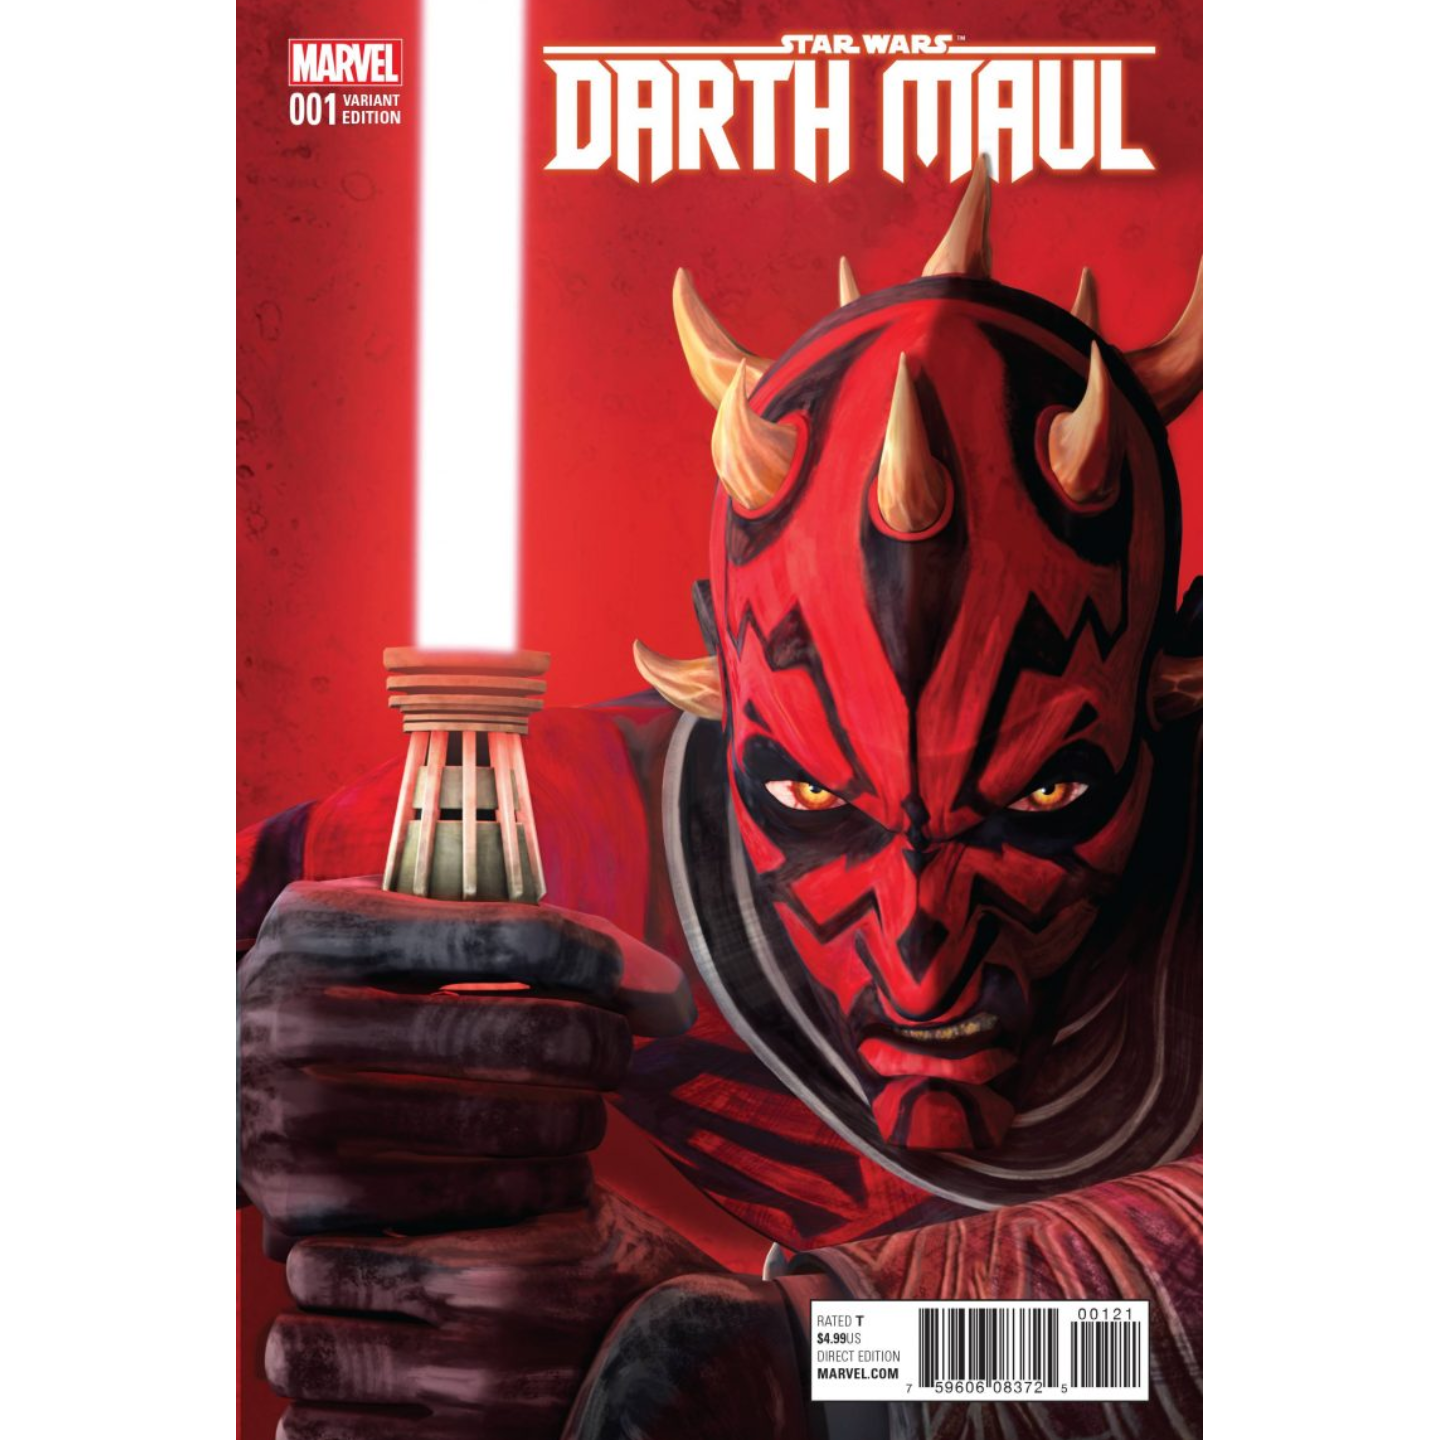 STAR WARS: DARTH MAUL #1 - ANIMATION